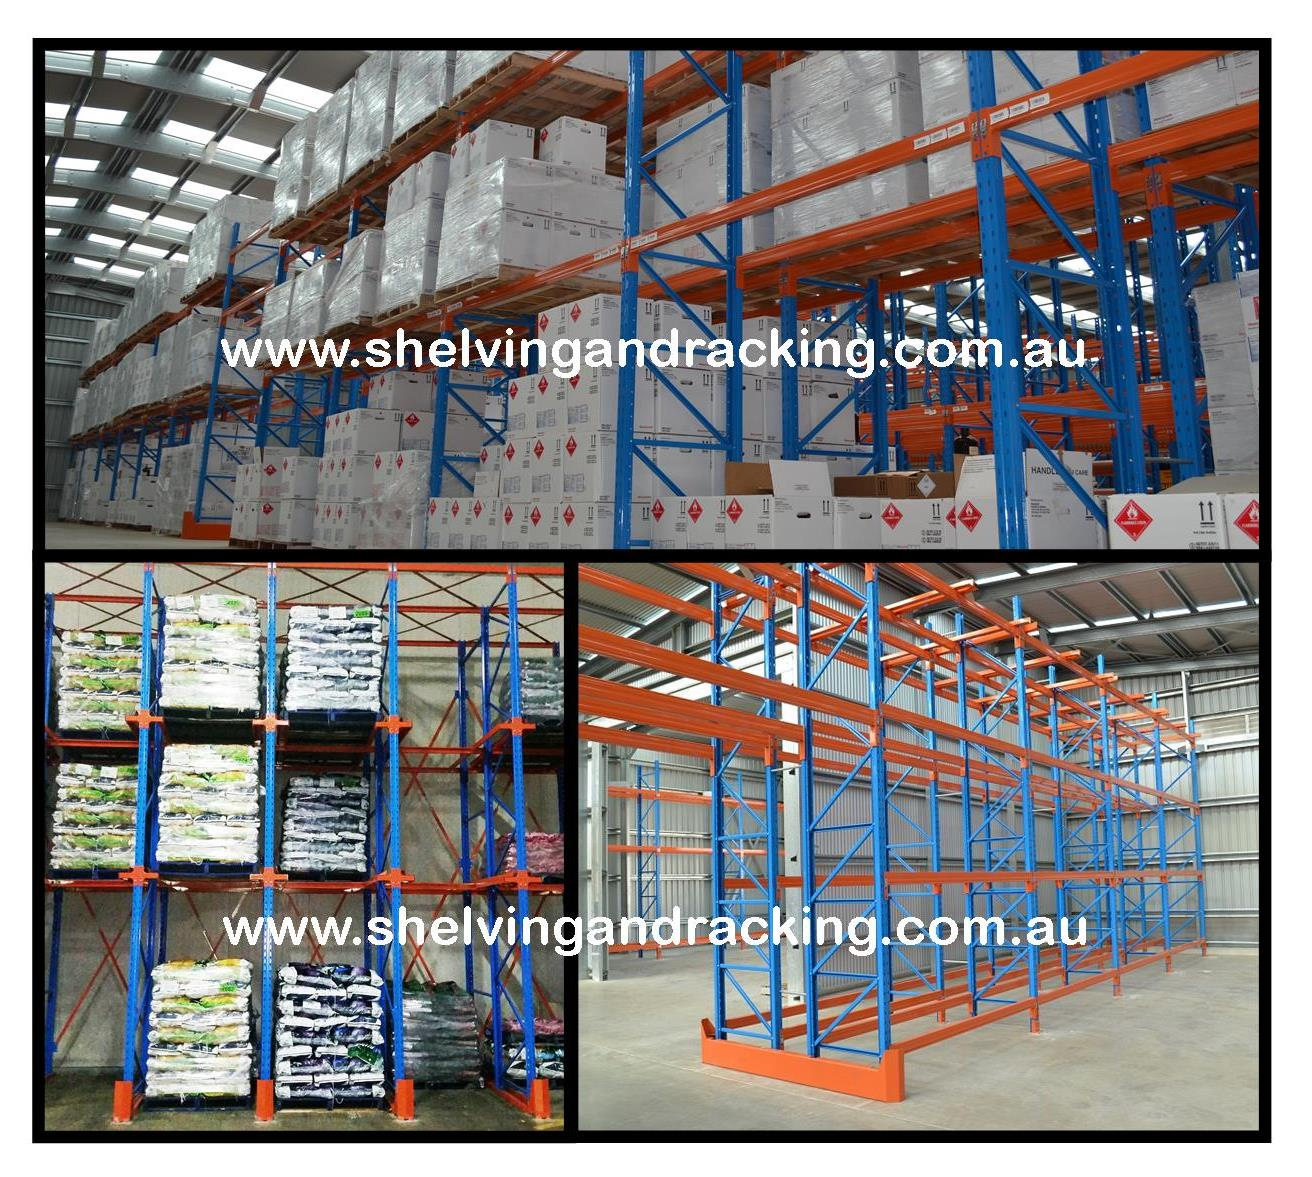 Shelving Adelaide Shelving Racking Australia Shelving Solutions 559 Grand